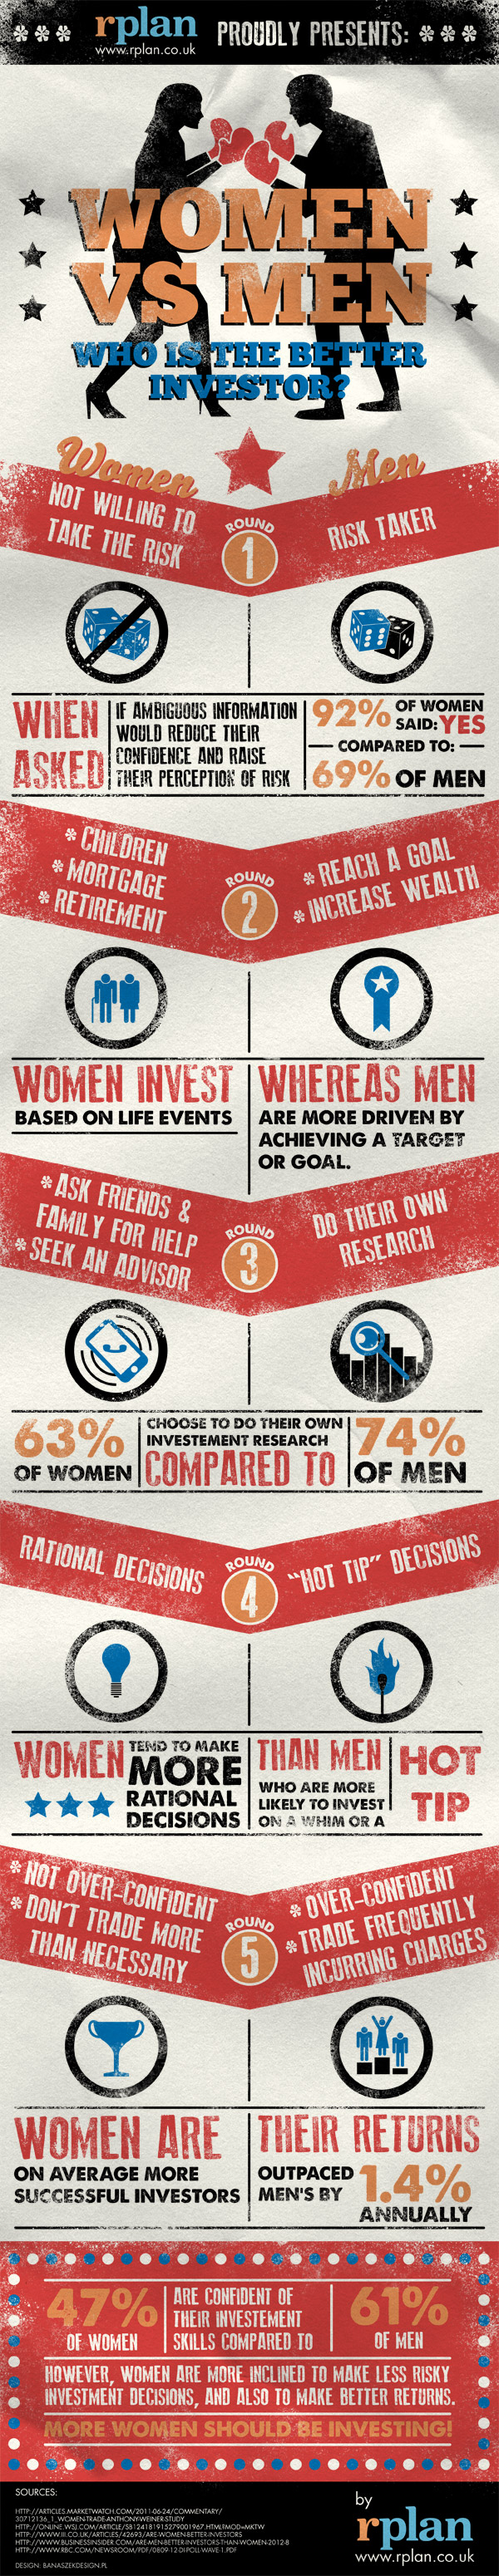 women-vs-men--who-is-the-better-investor_50aa6ae44b918